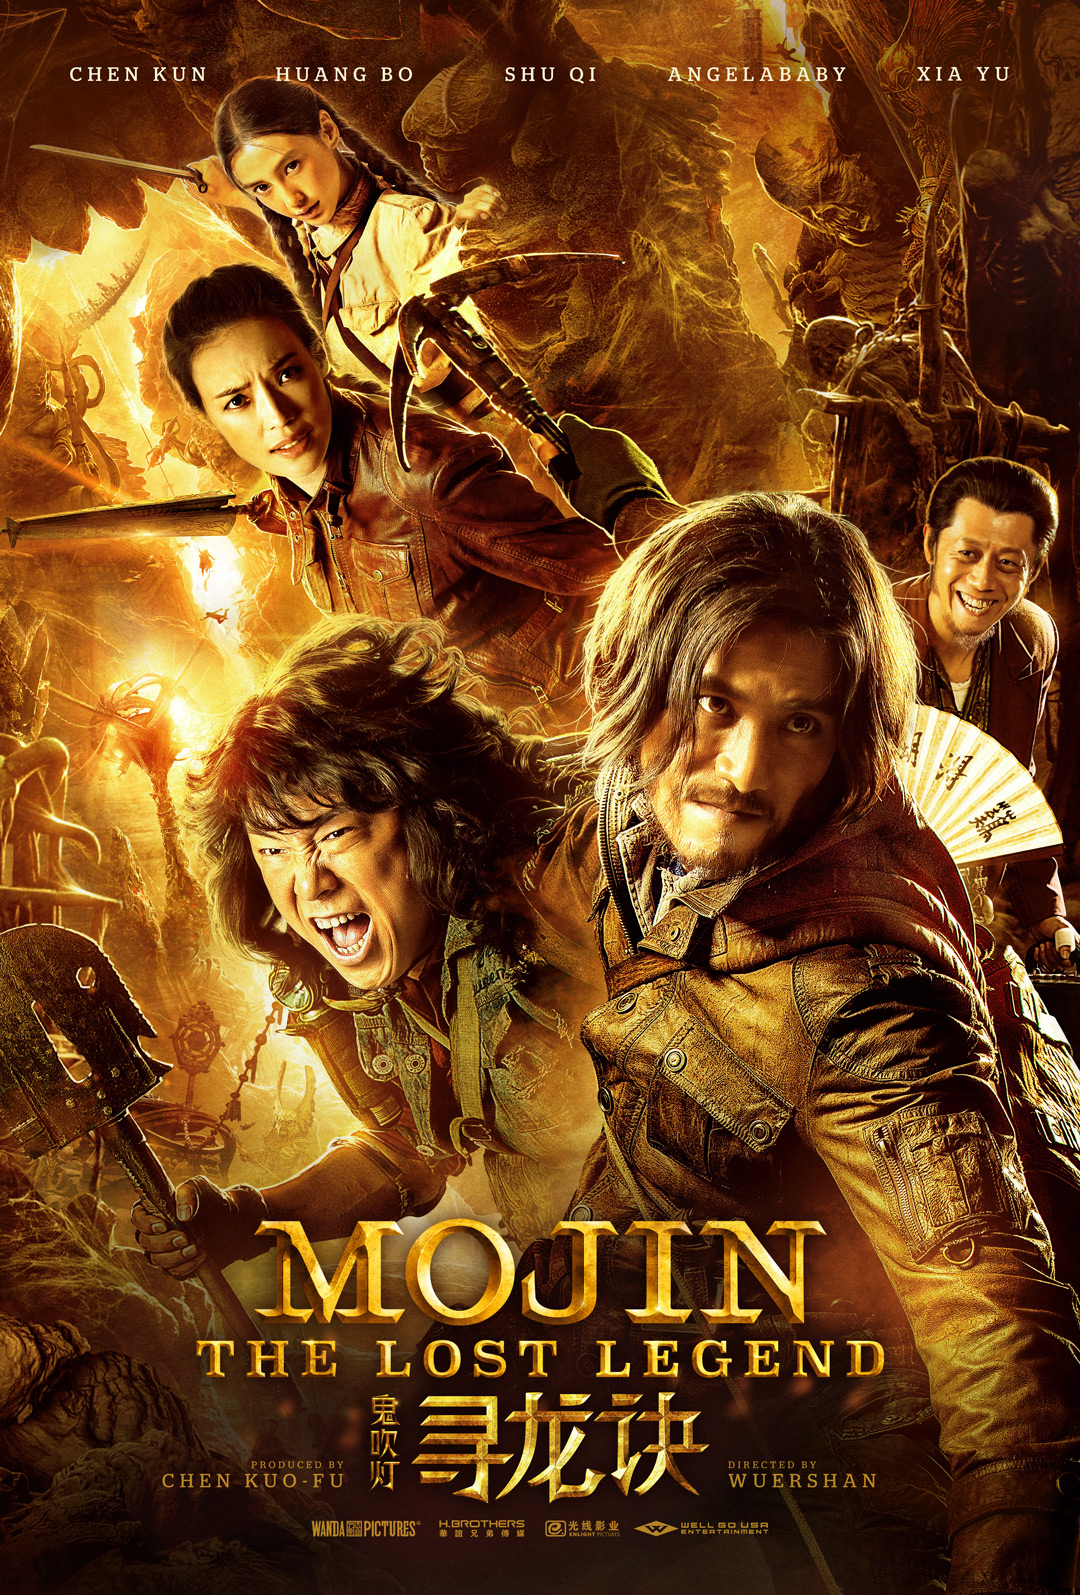 Mojin-The-Lost-Legend_poster.jpg